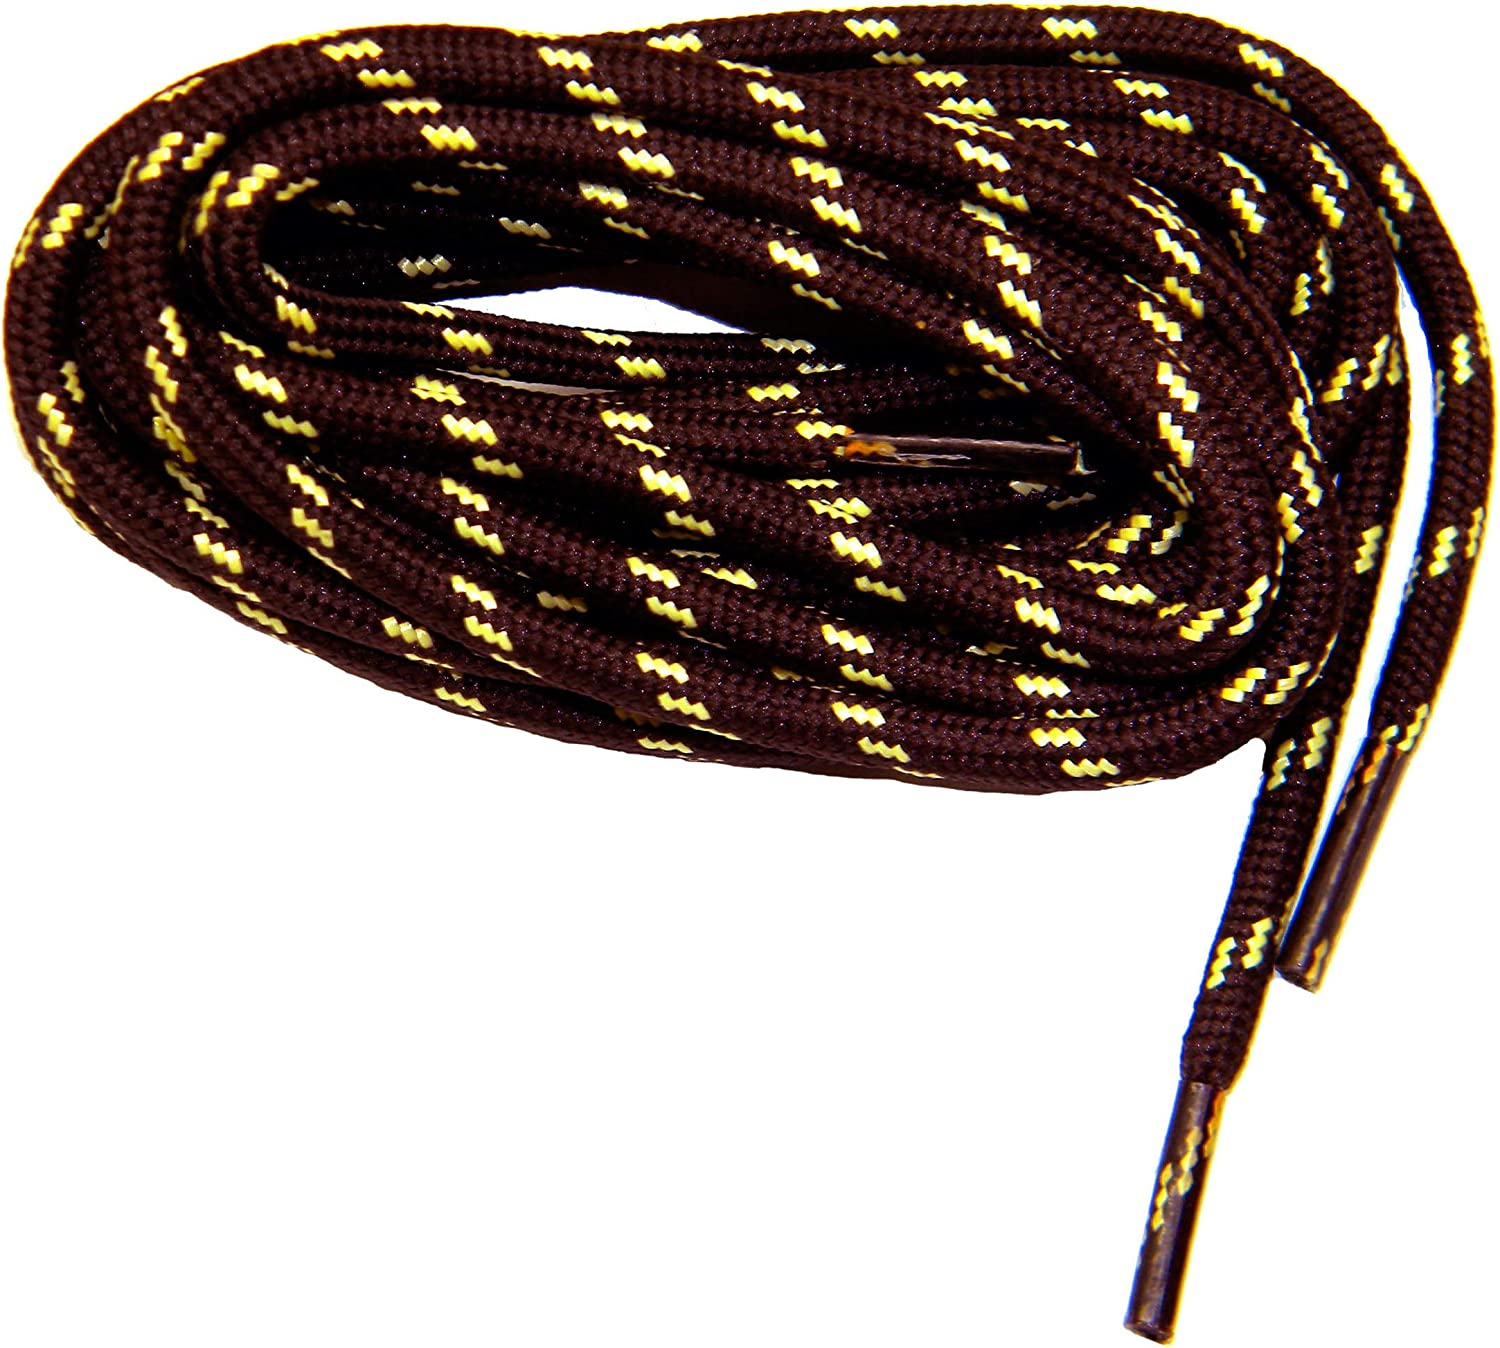 OLDI Heavy Duty Natural Kevlar Reinforced Boot Laces Shoelaces 2 Pair Pack